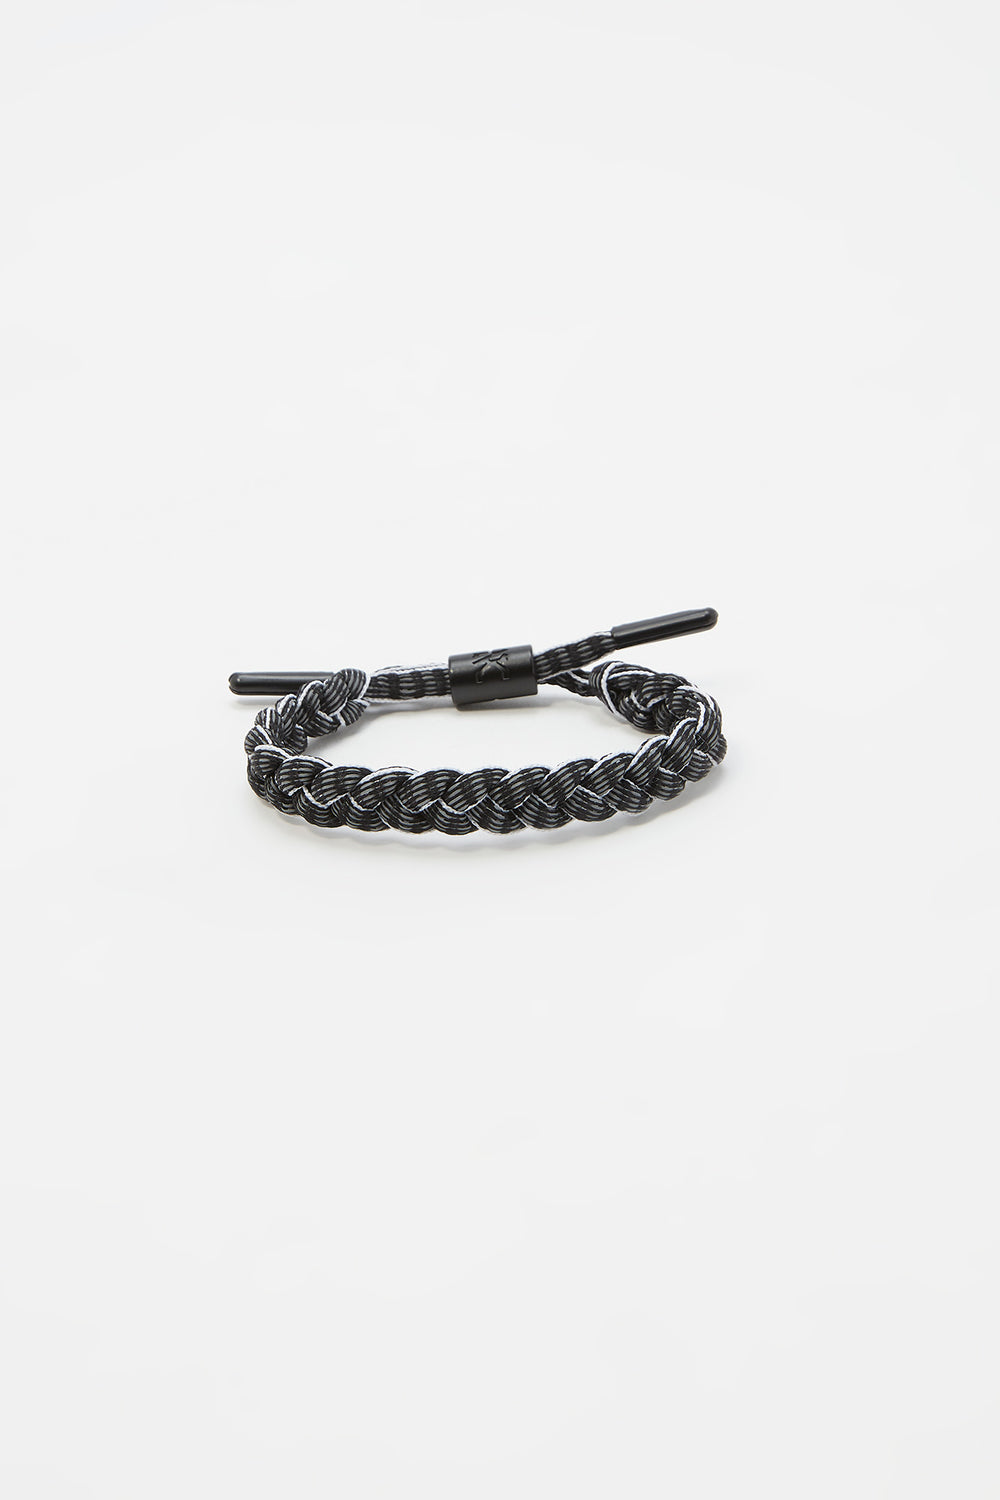 Zoo York Bracelet Black with White